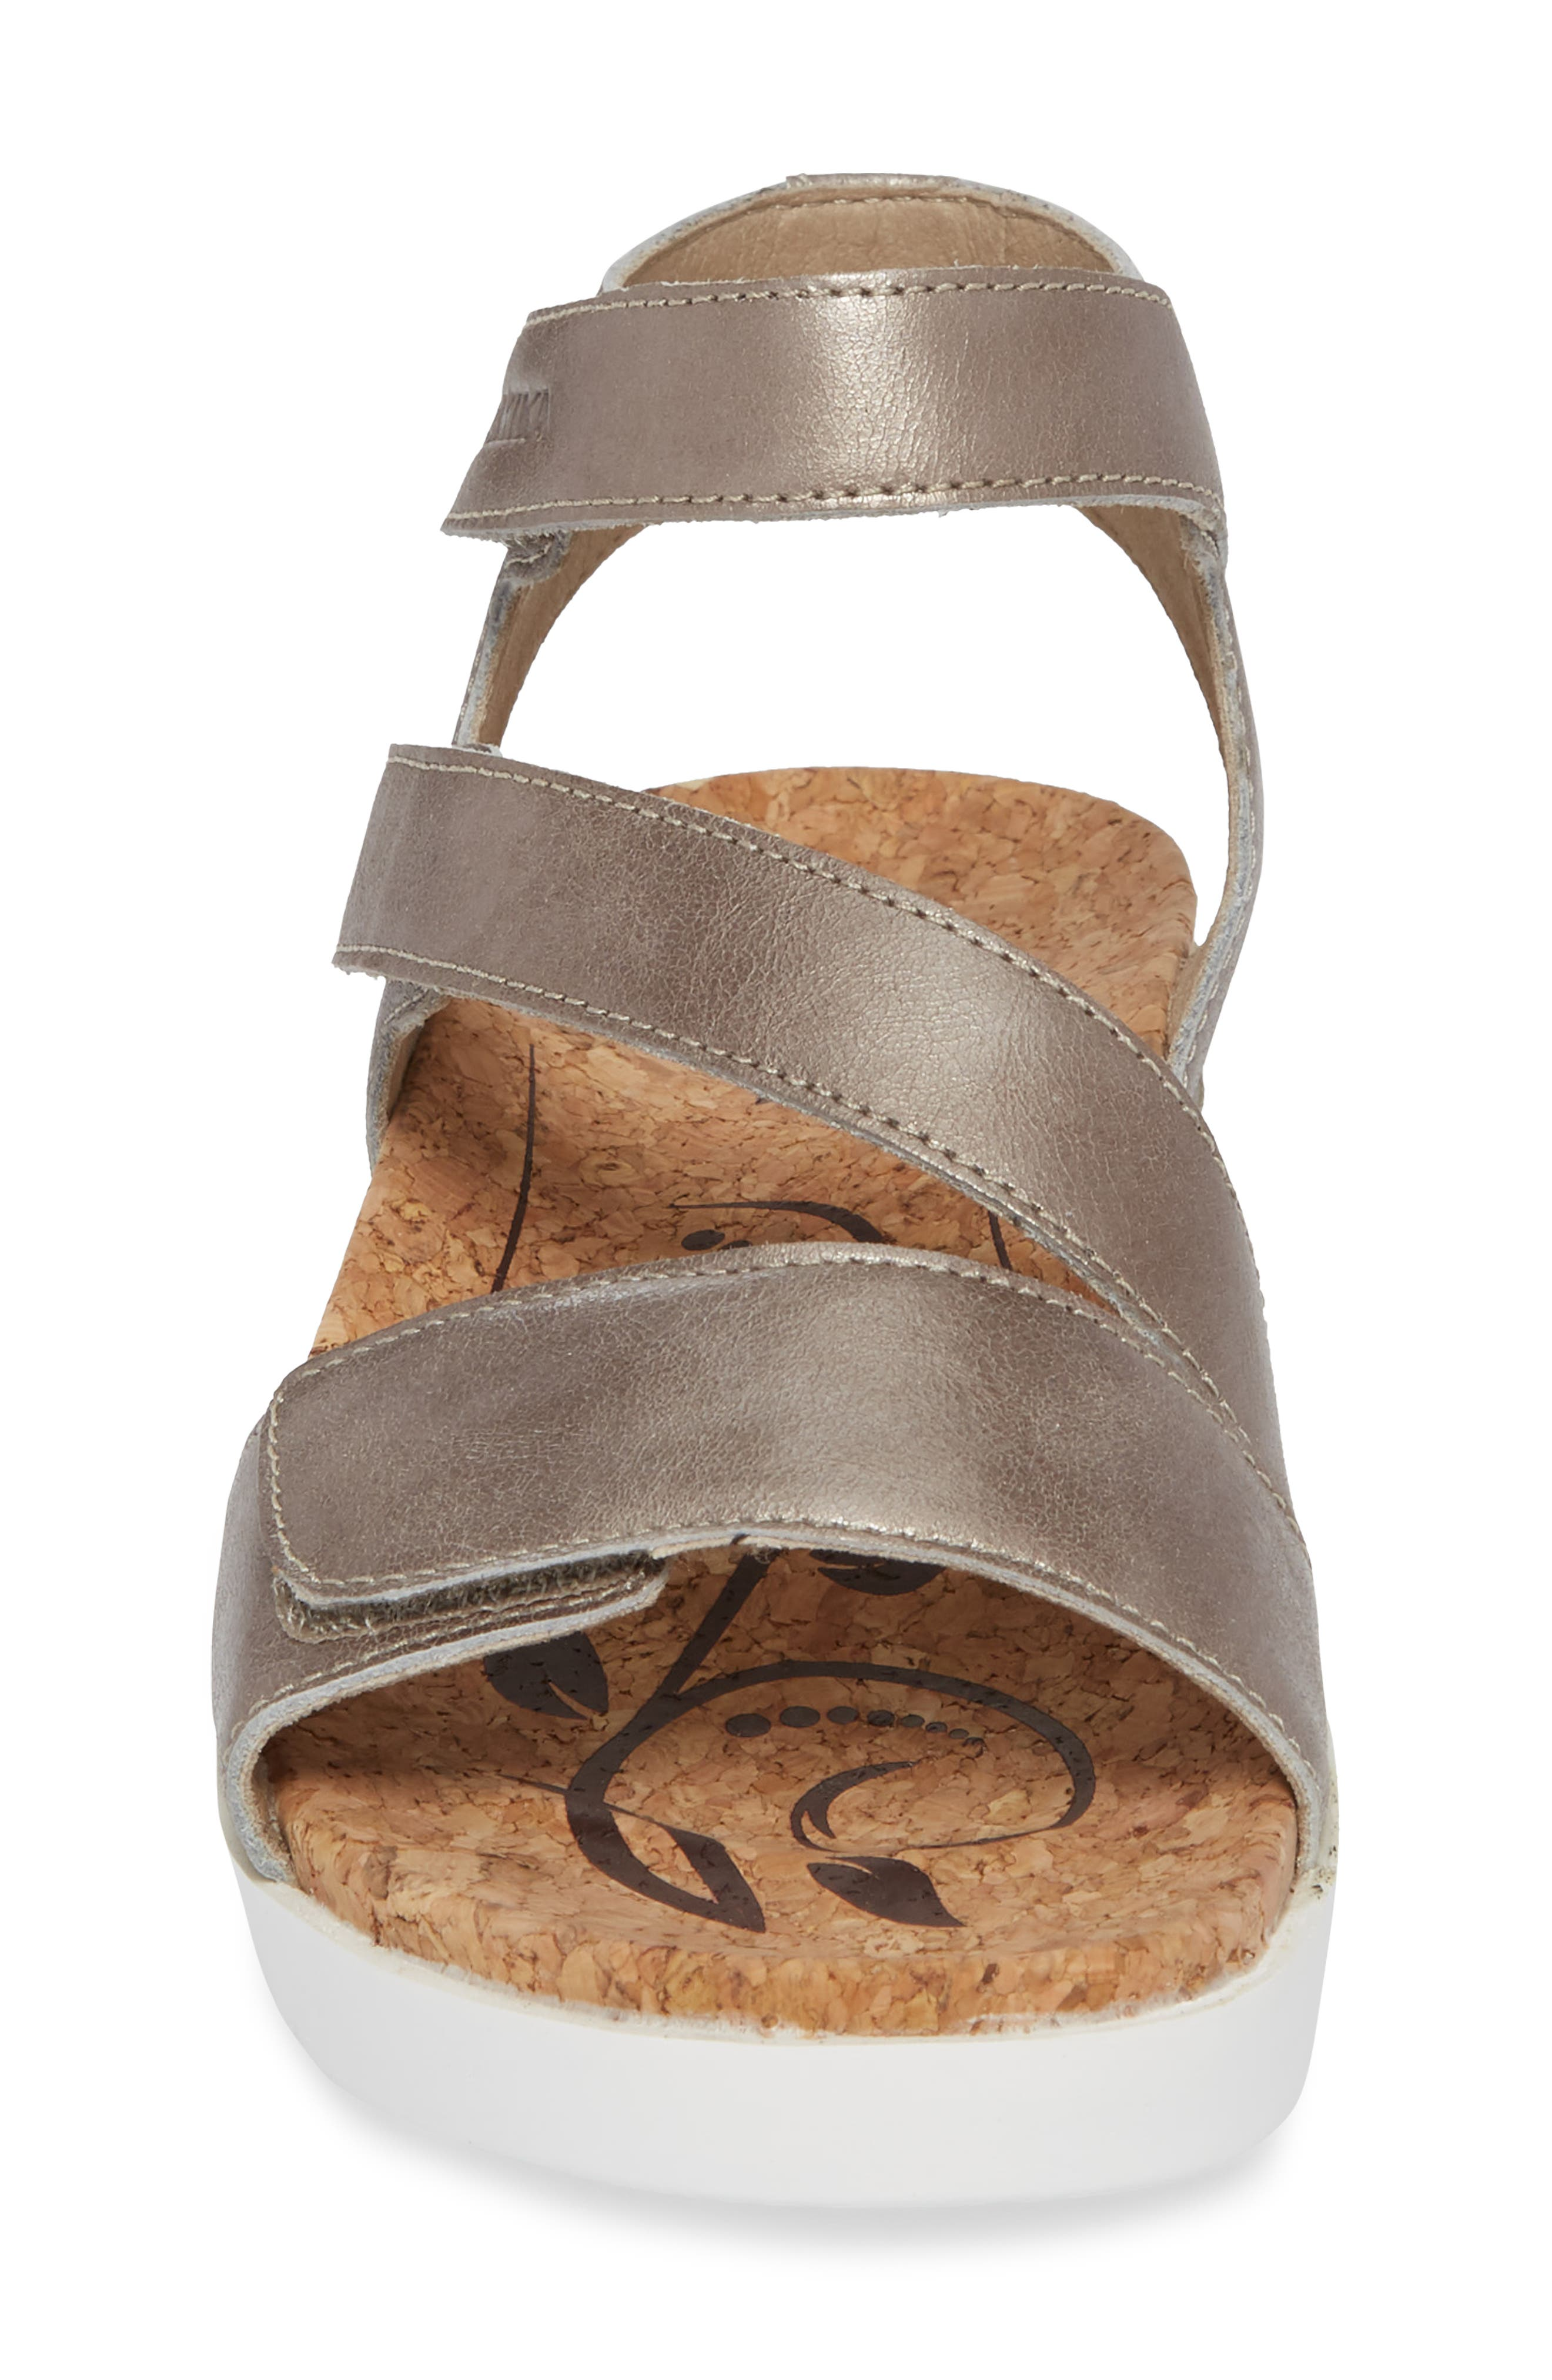 ROMIKA<SUP>®</SUP>, Hollywood 04 Sandal, Alternate thumbnail 4, color, PLATINUM LEATHER